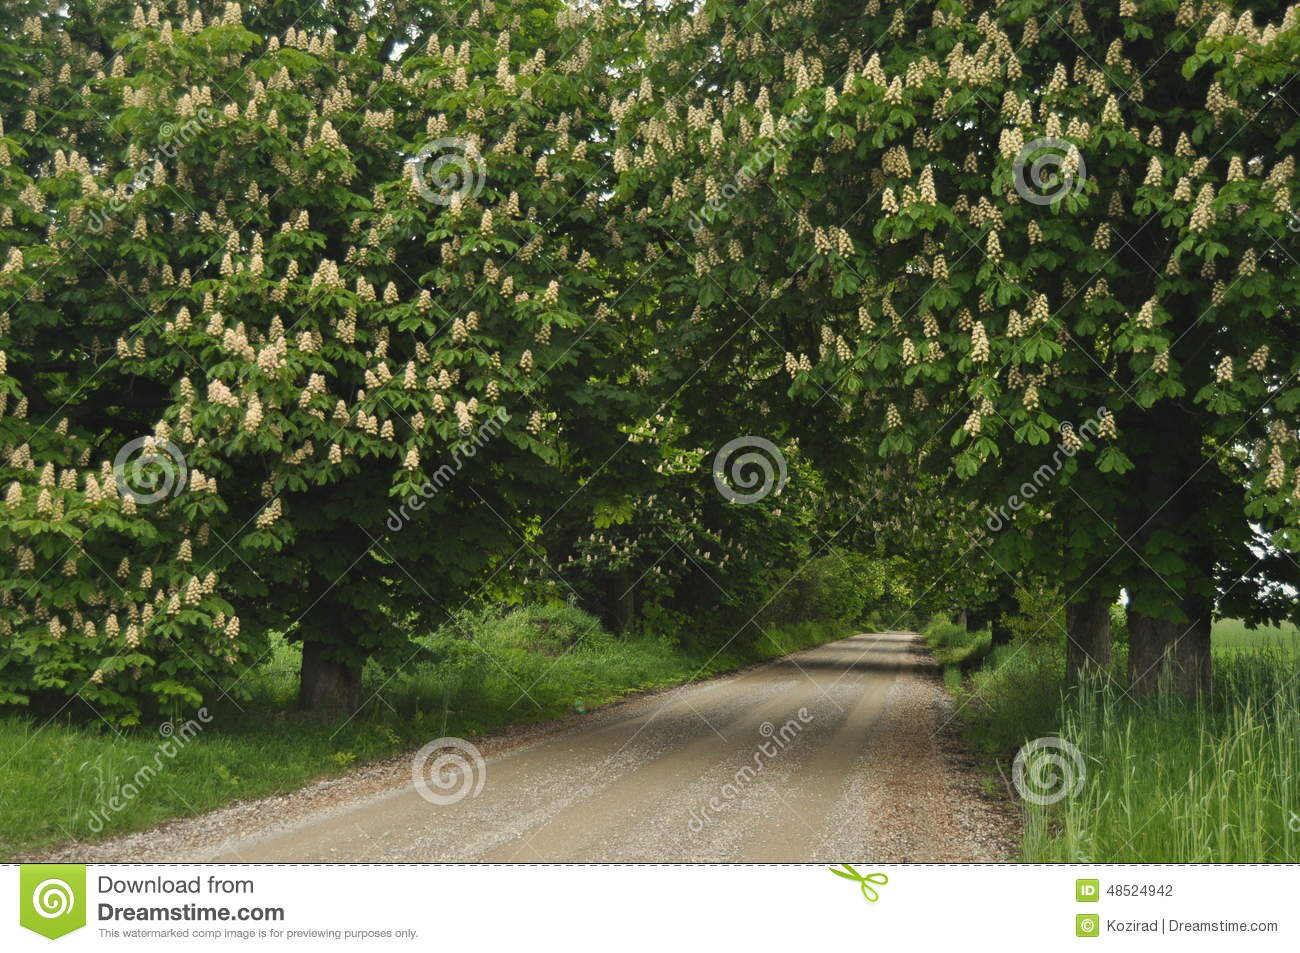 Blooming chestnut trees along the gravel road spring white flowers blooming chestnut trees along the gravel road spring white flowers mightylinksfo